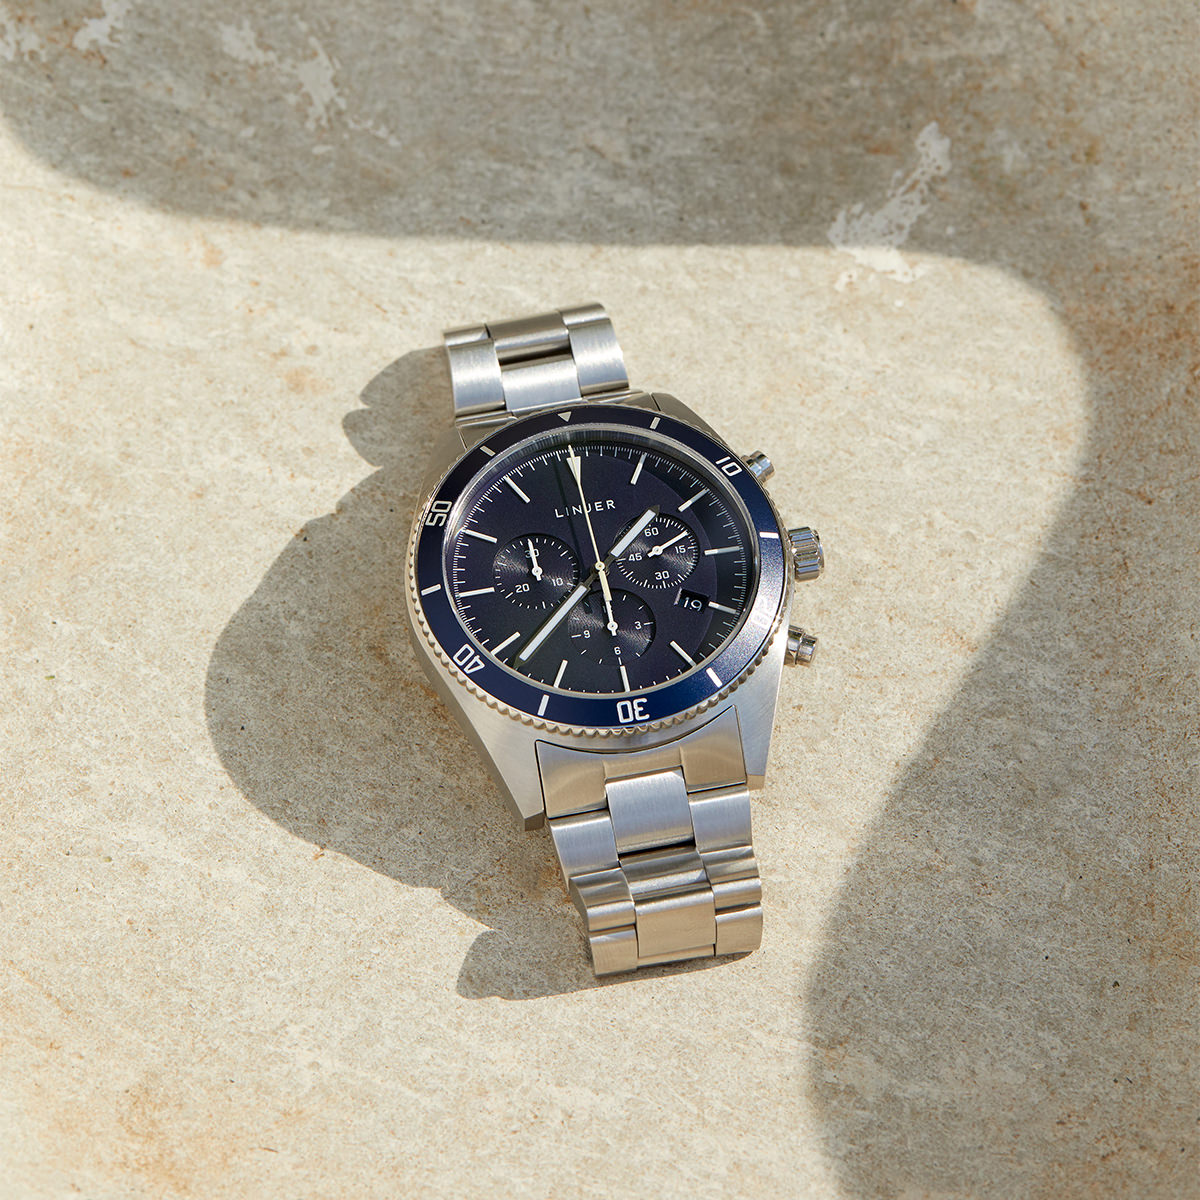 Blue Dial, Steel Band